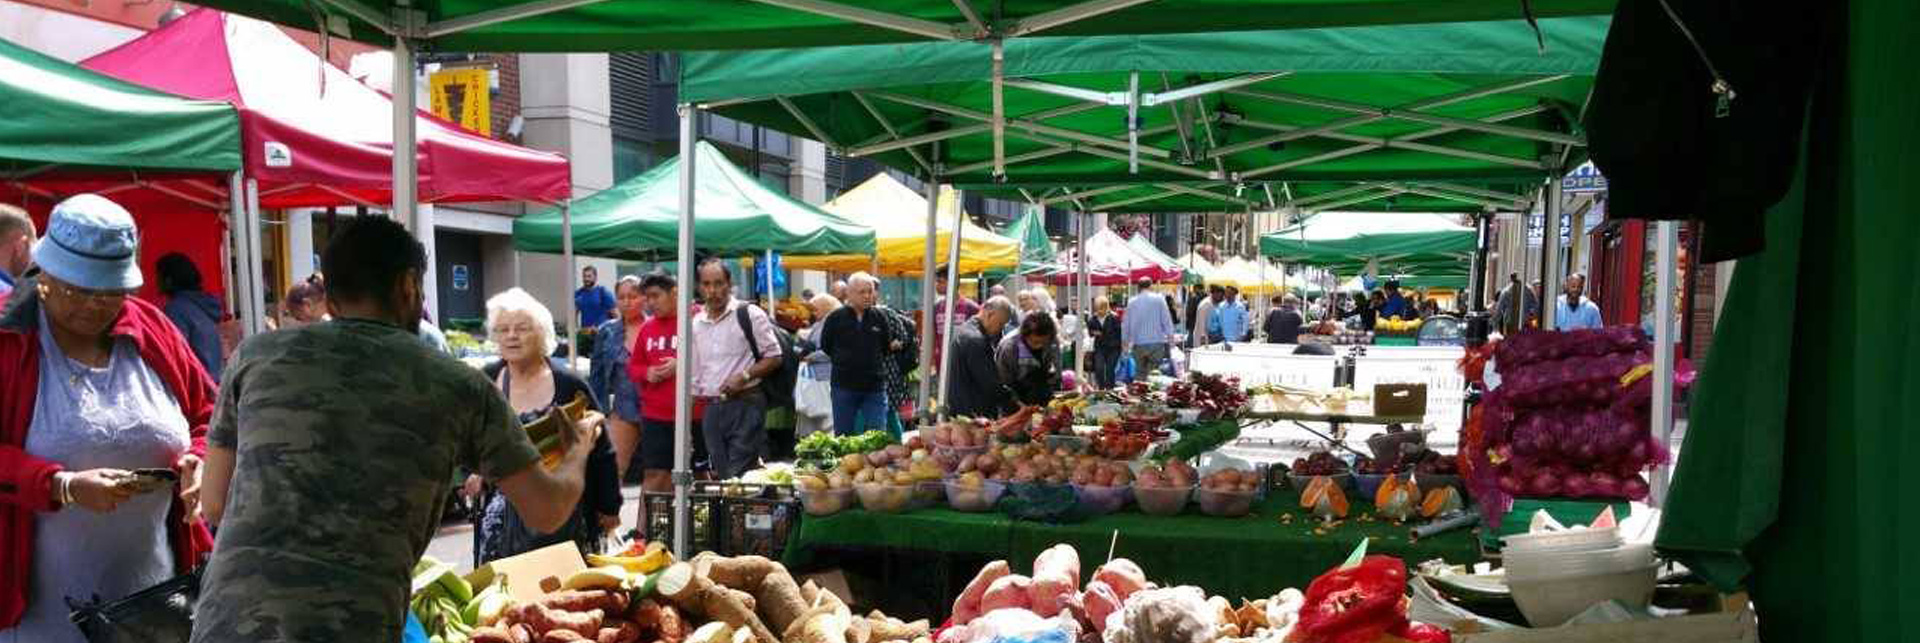 pop-up market stall